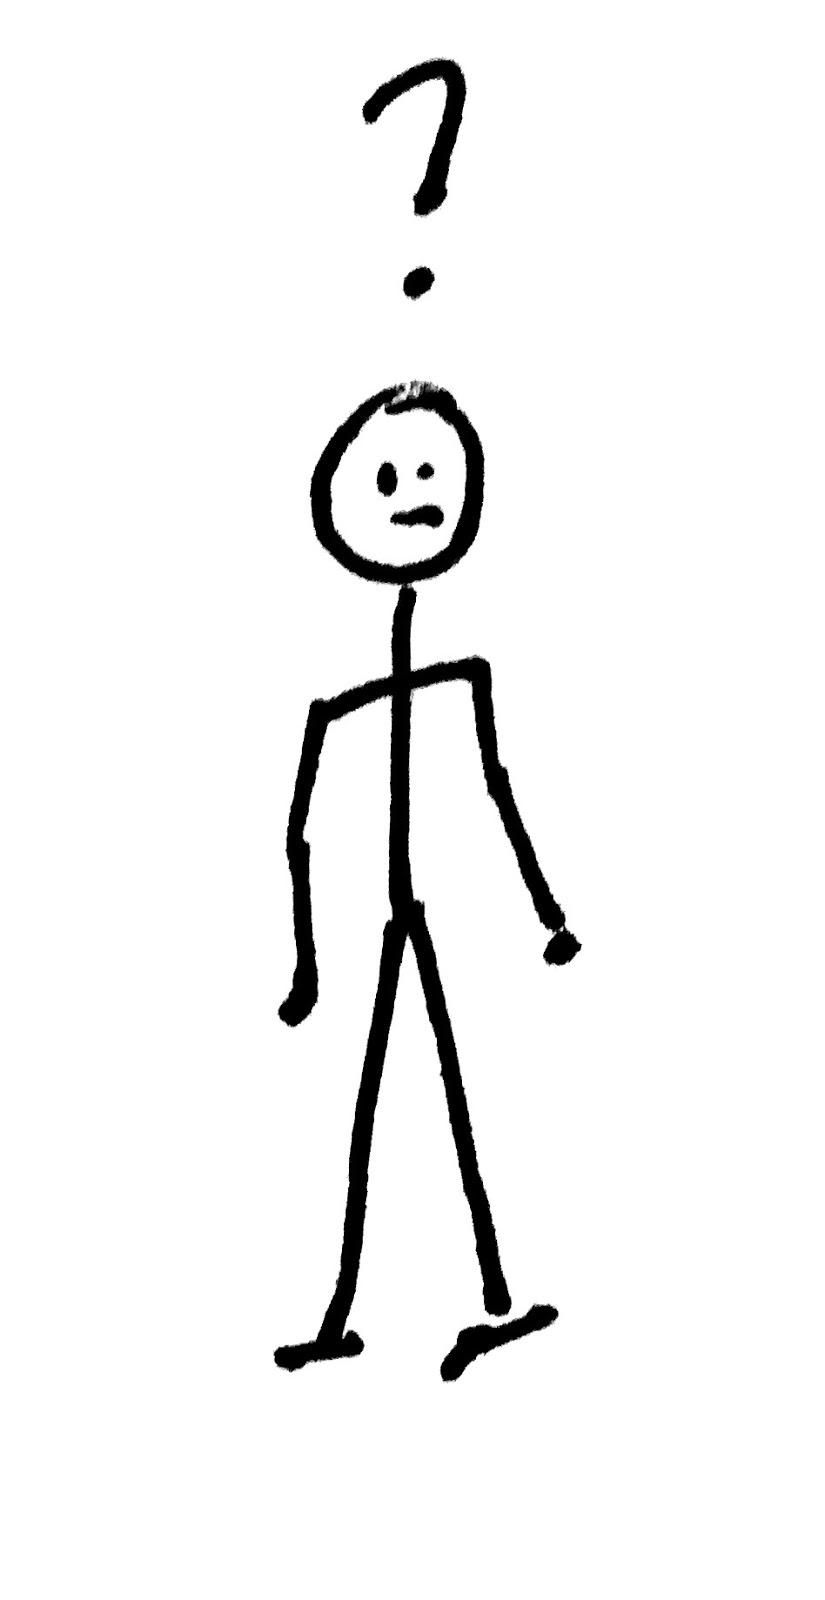 A drawing of a quizzical looking stick figure examining a manageable set of components.